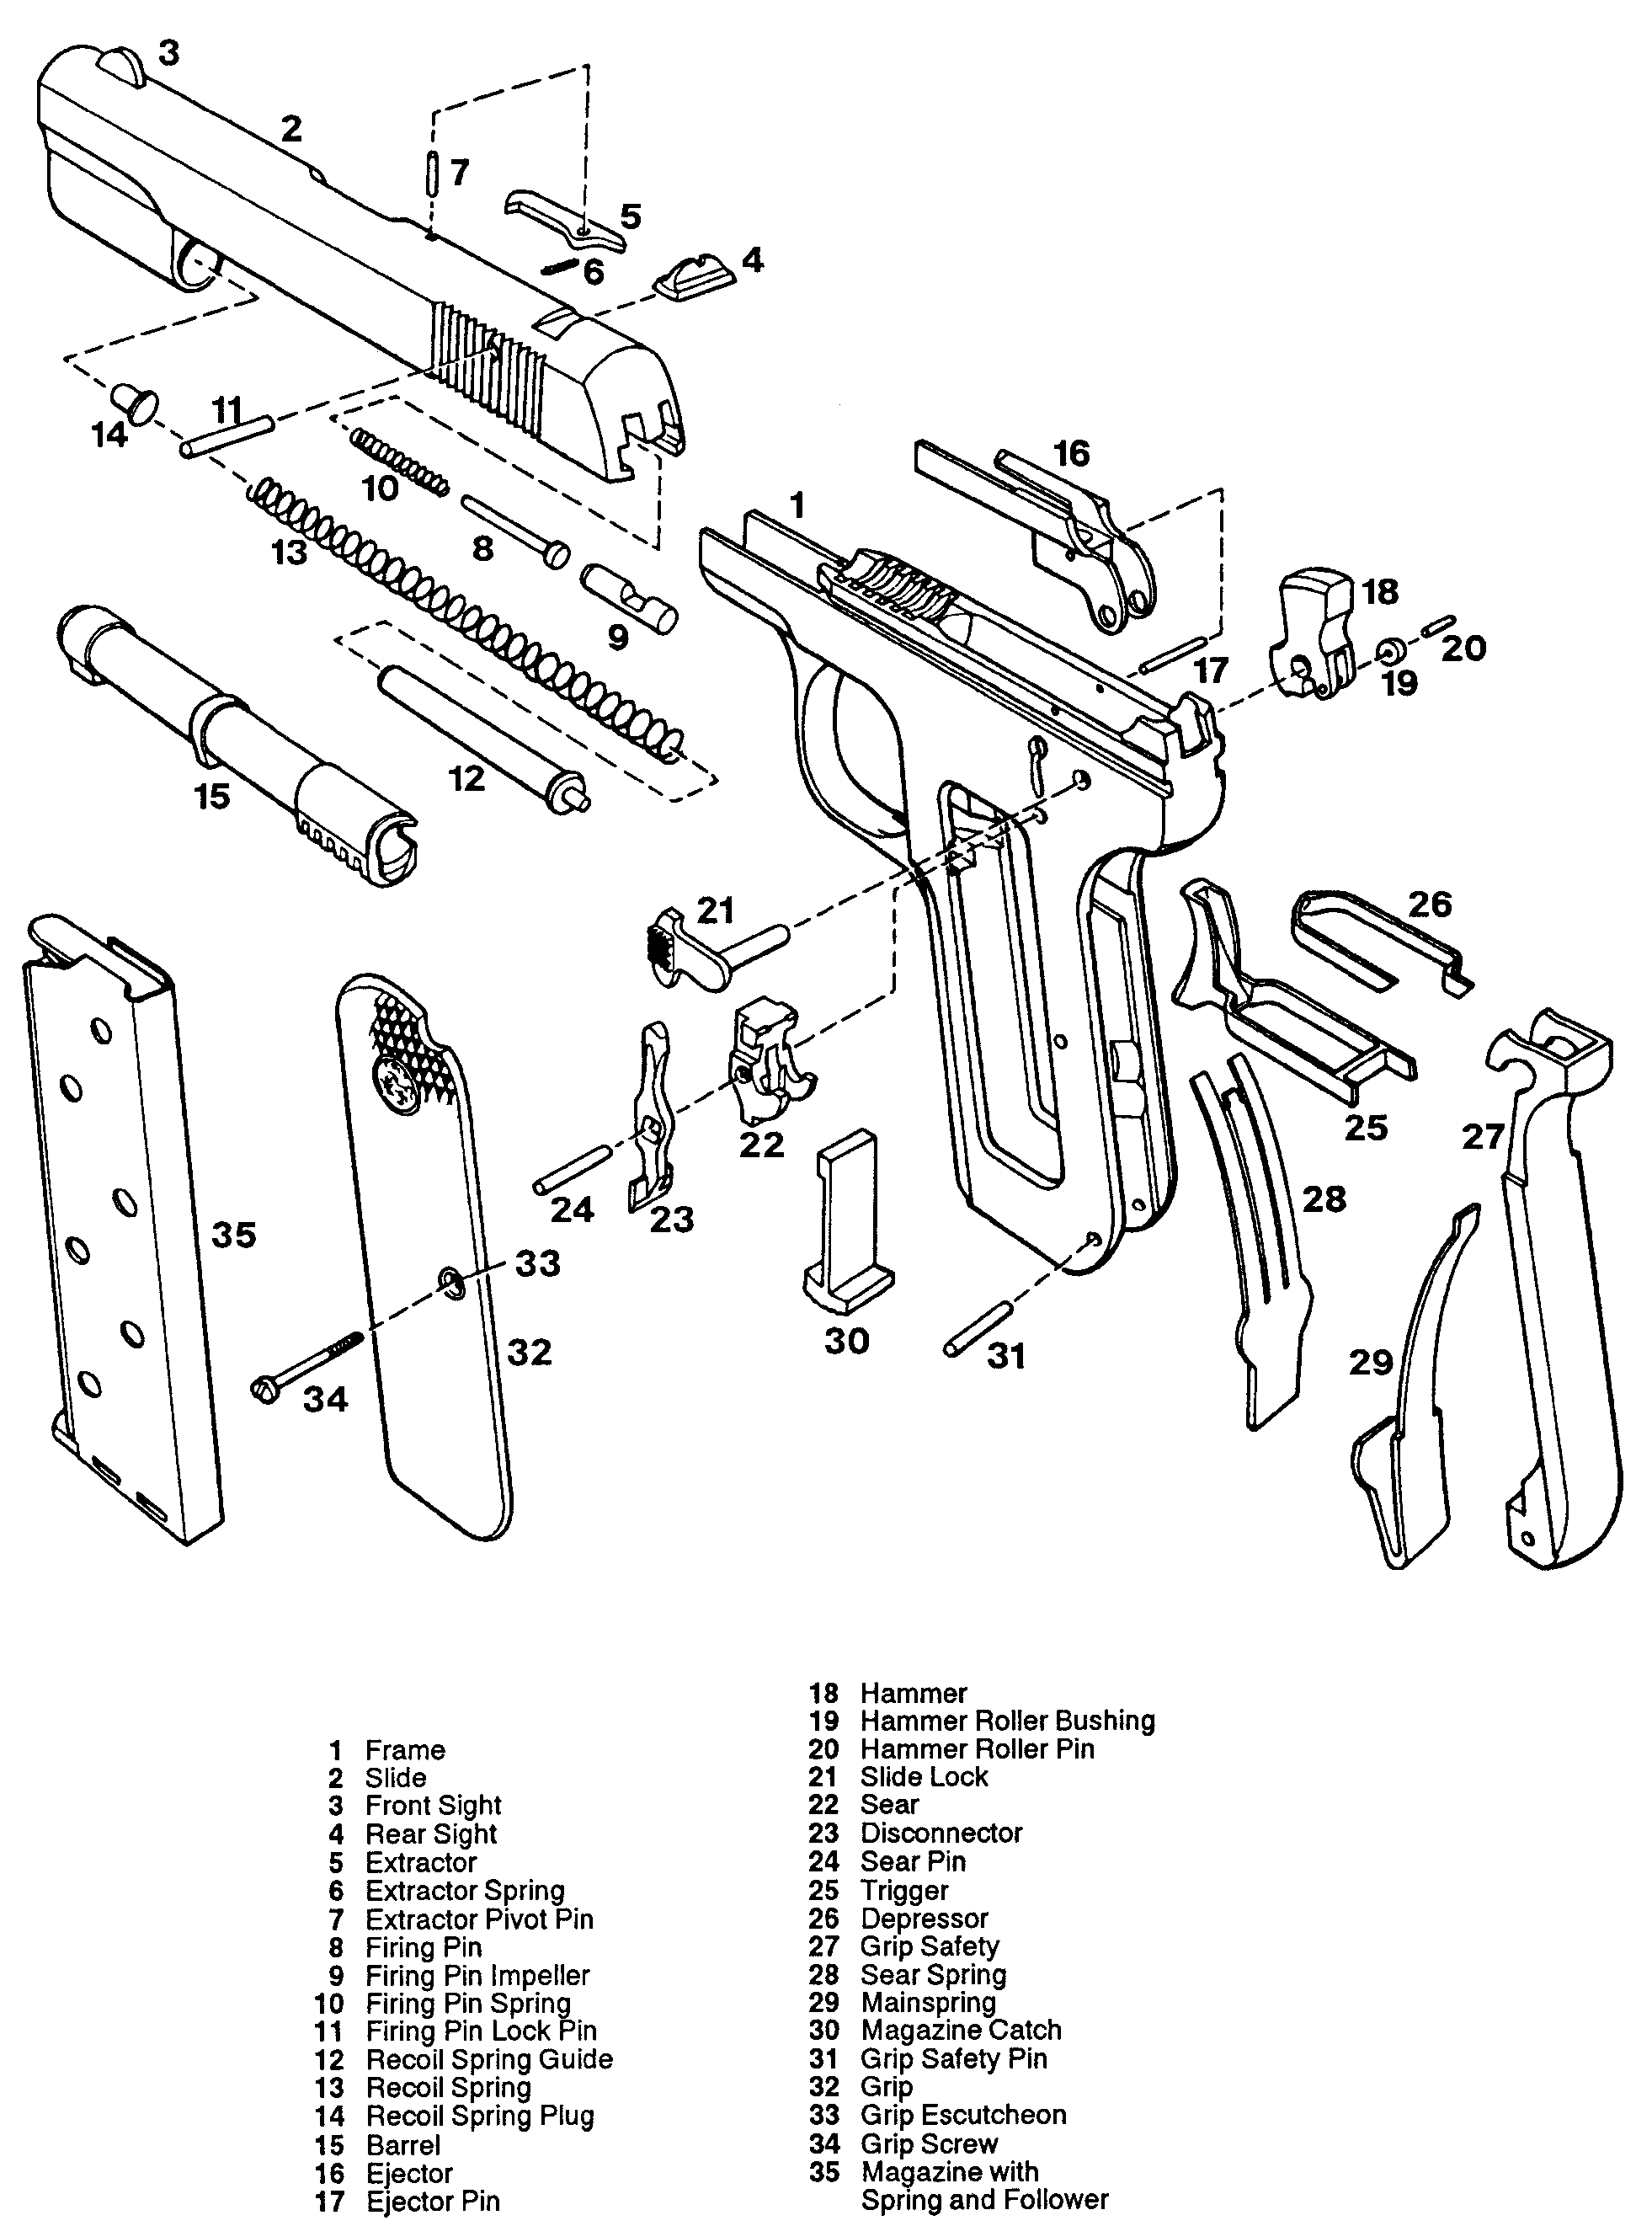 Swell Kimber 1911 Parts Diagram Search Electric Mx Tl Wiring Cloud Tobiqorsaluggs Outletorg